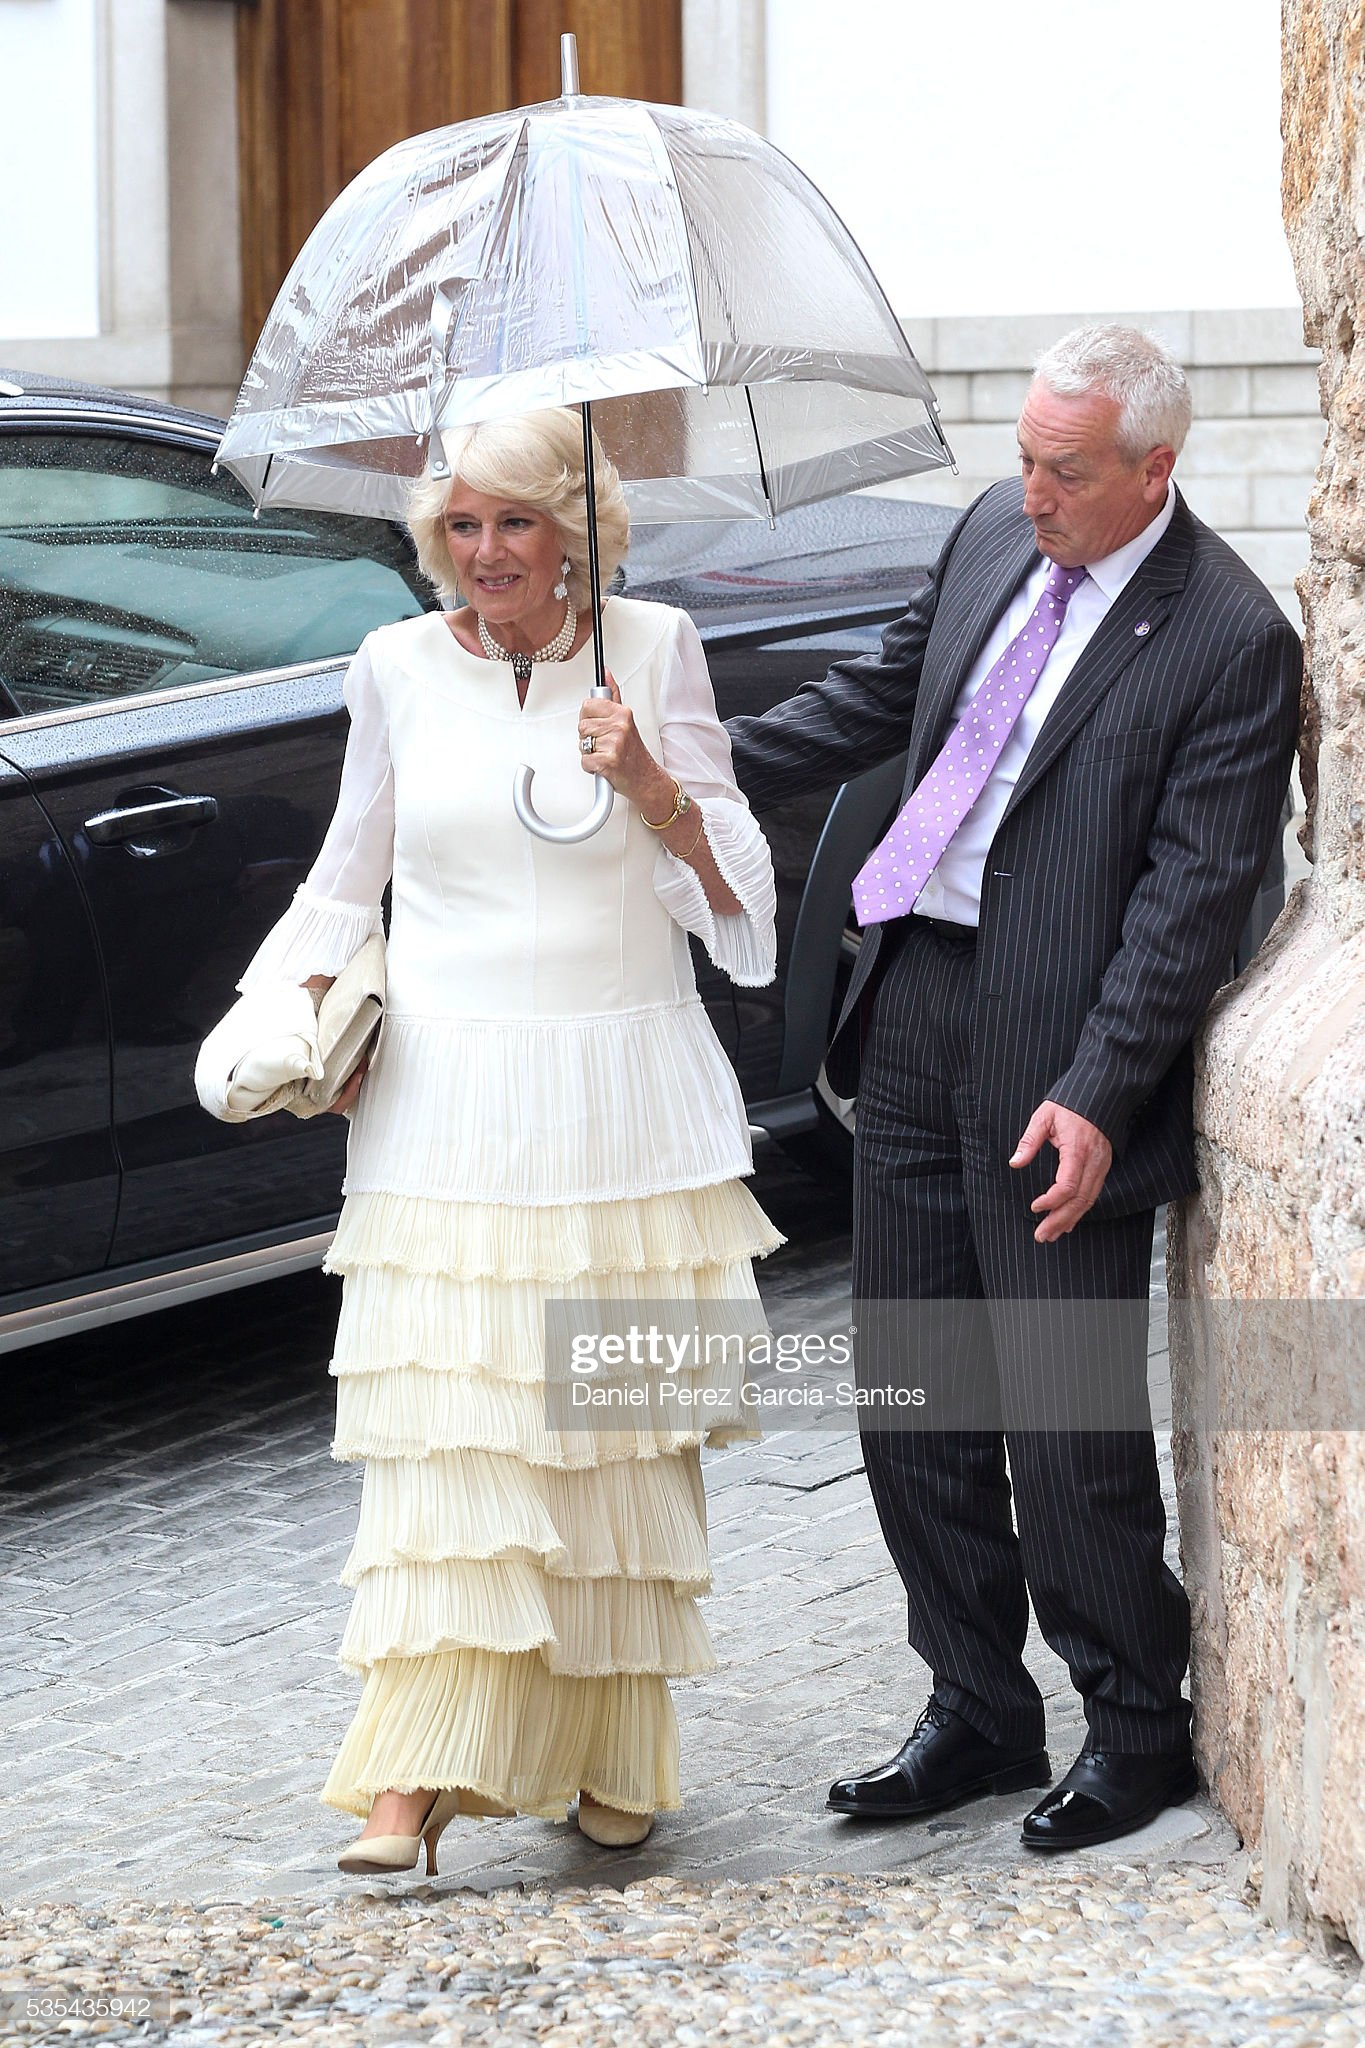 Lady Charlotte Wellesley and Alejandro Santo Domingo Wedding in Granada : News Photo